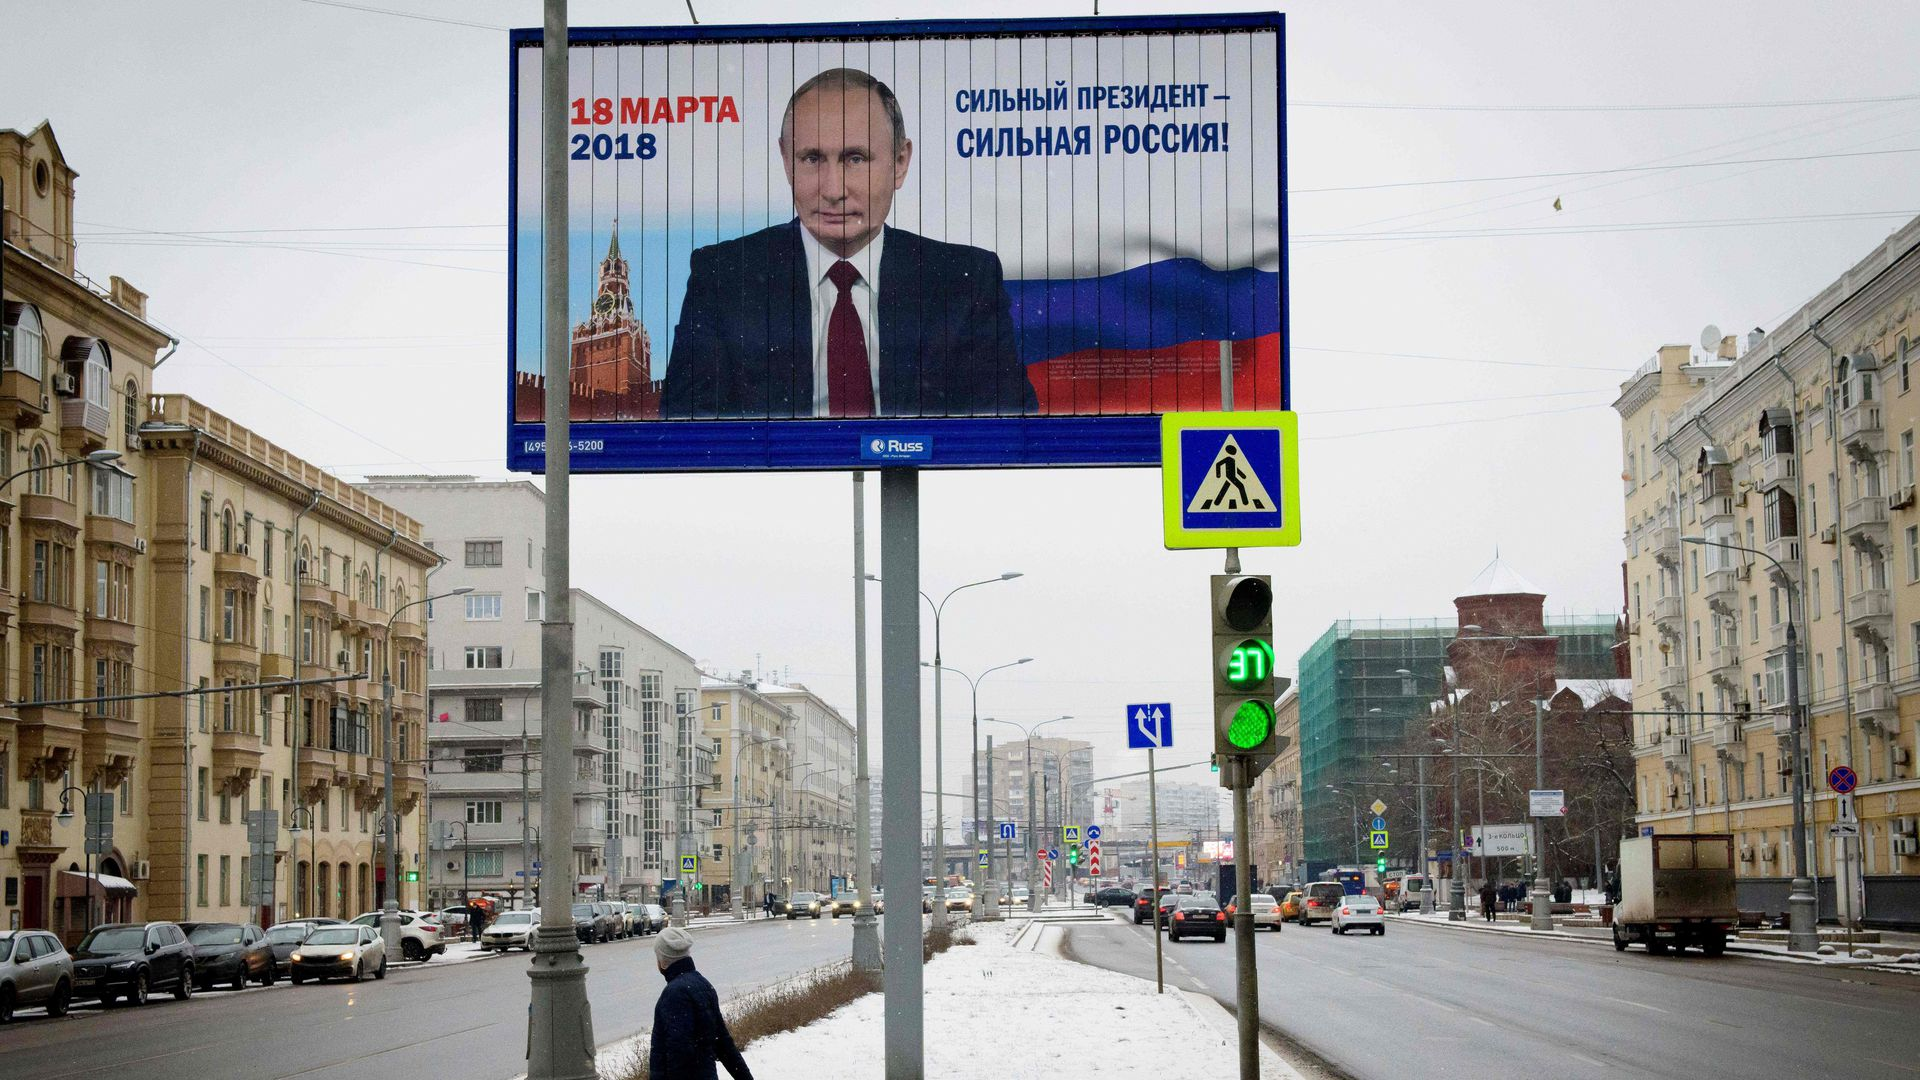 Vladimir Putin on a billboard.